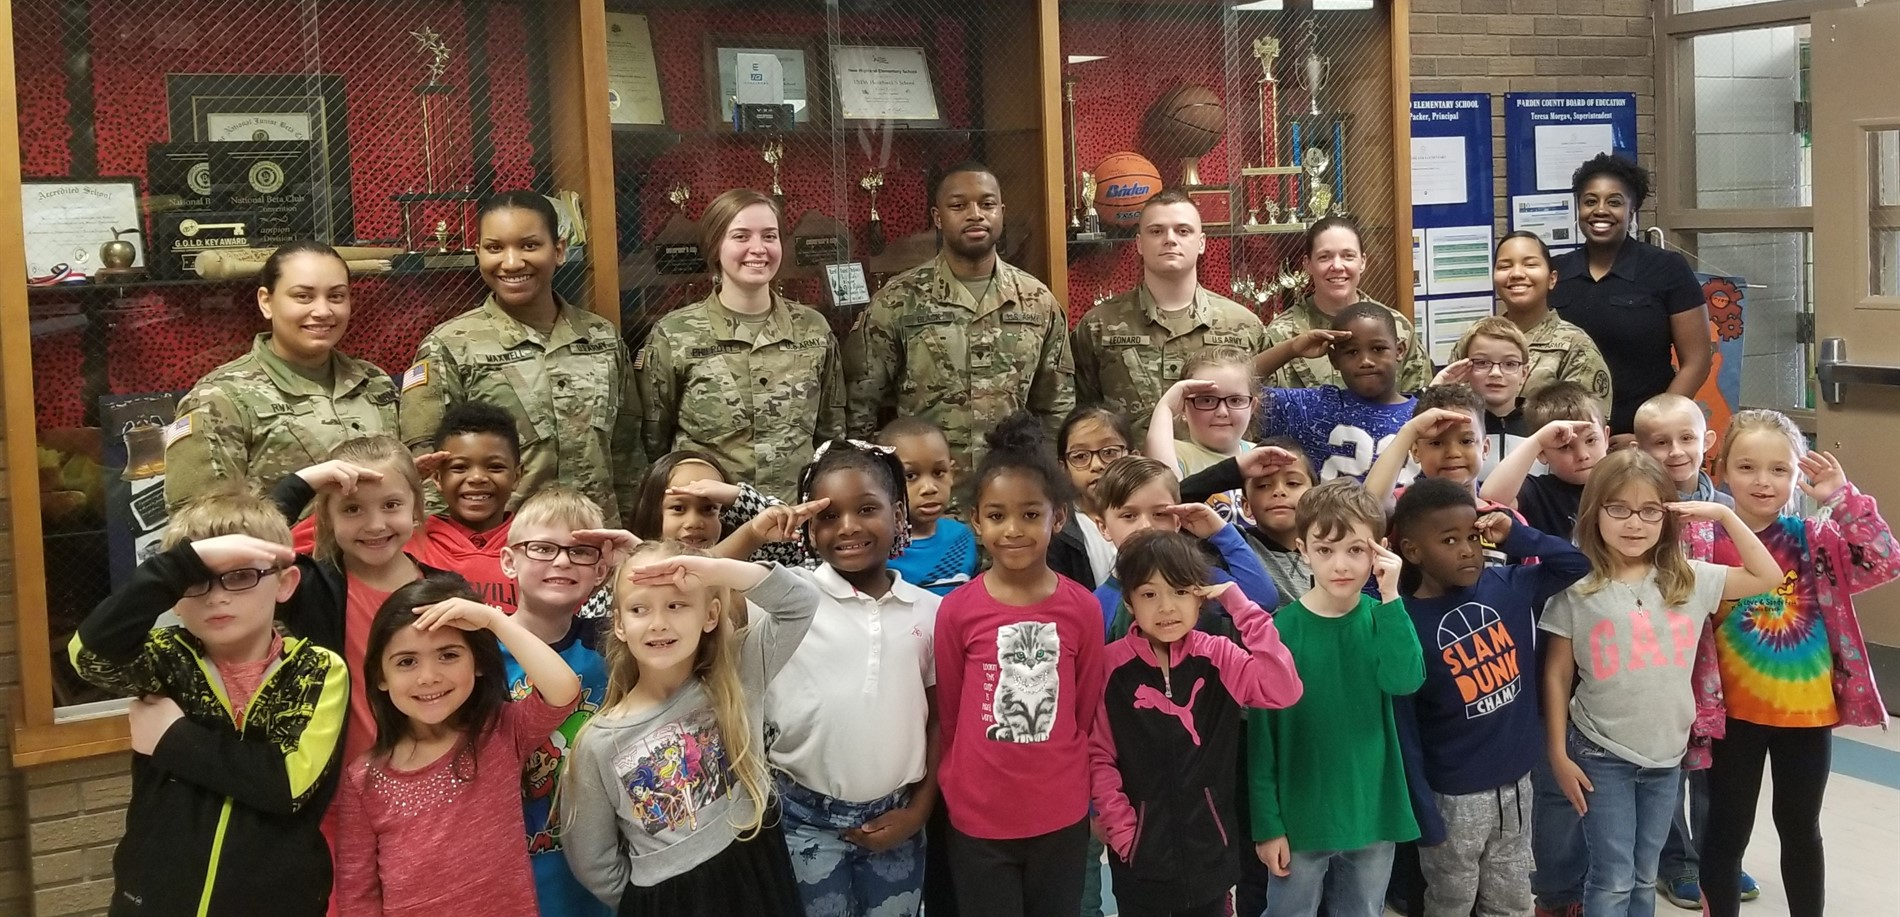 New Highland Elementary School welcomed some American heroes to discuss how a strong work ethic is critical to success.